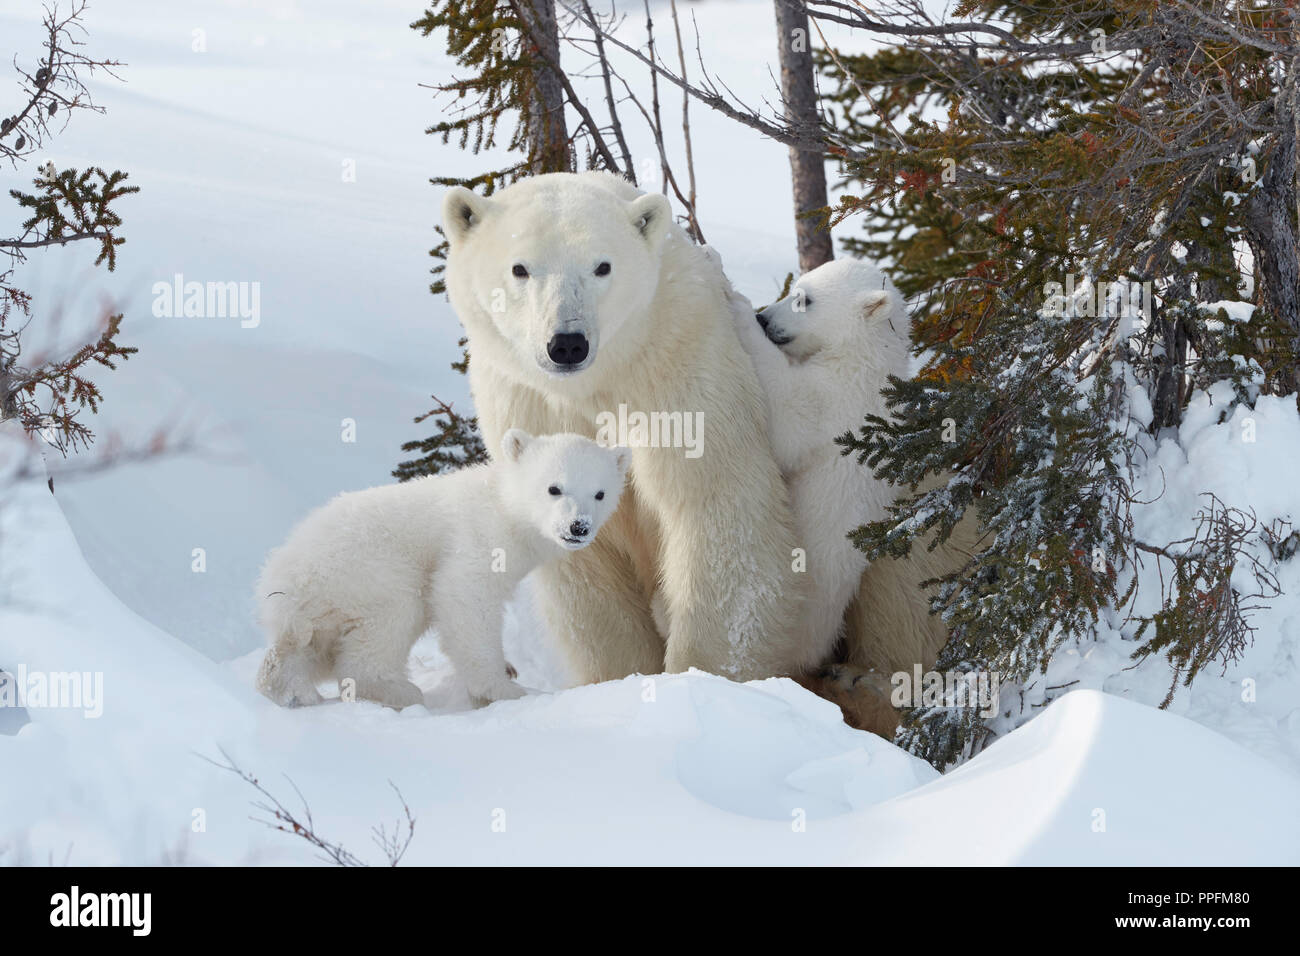 Polar bears (Ursus maritimus), mother animal with two newborns in a snow hollow, Wapusk National Park, Manitoba, Canada - Stock Image